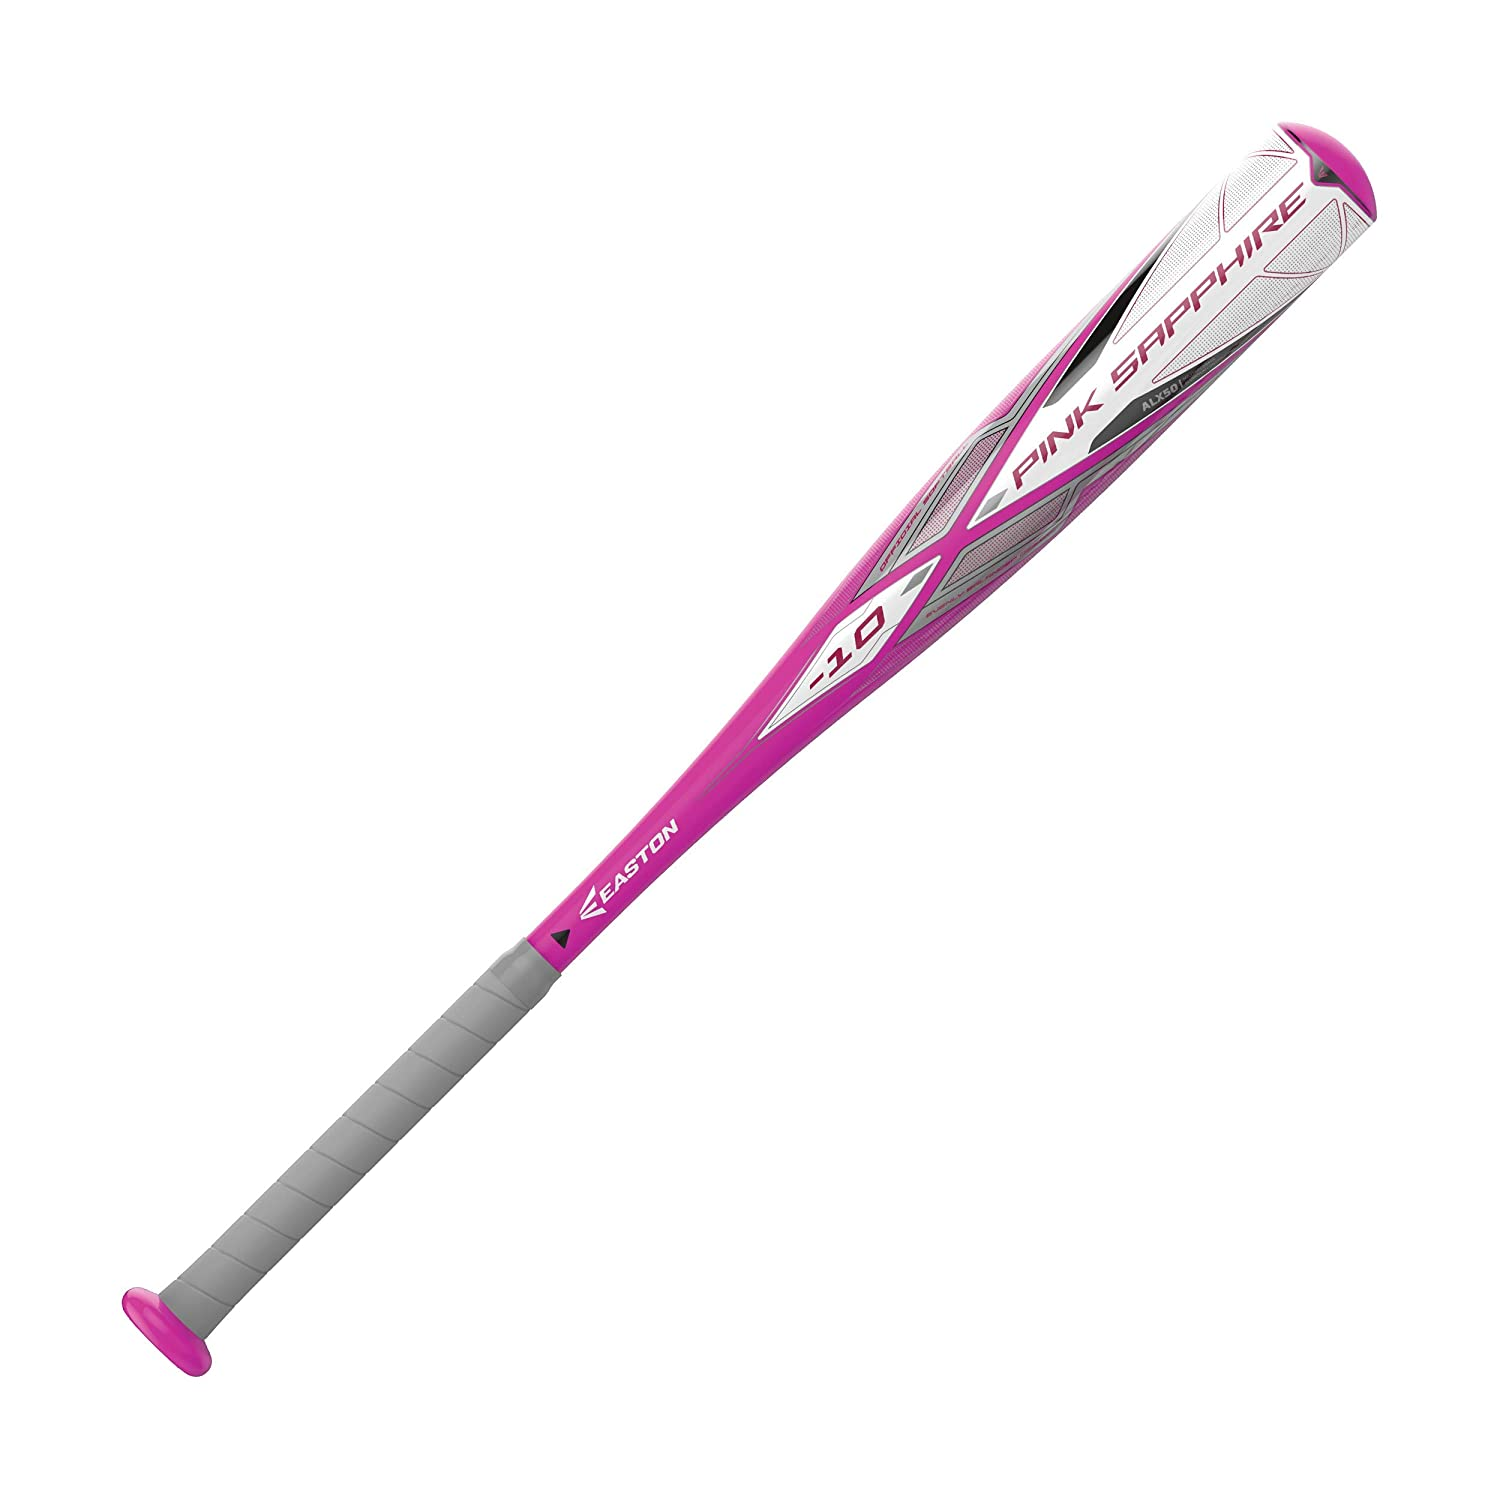 1 Piece Aluminum Ultra Thin Handle 2020 Approved All Fields Comfort Grip ALX50 Military Grade Aluminum EASTON PINK SAPPHIRE -10 Girls // Youth Fastpitch Softball Bat